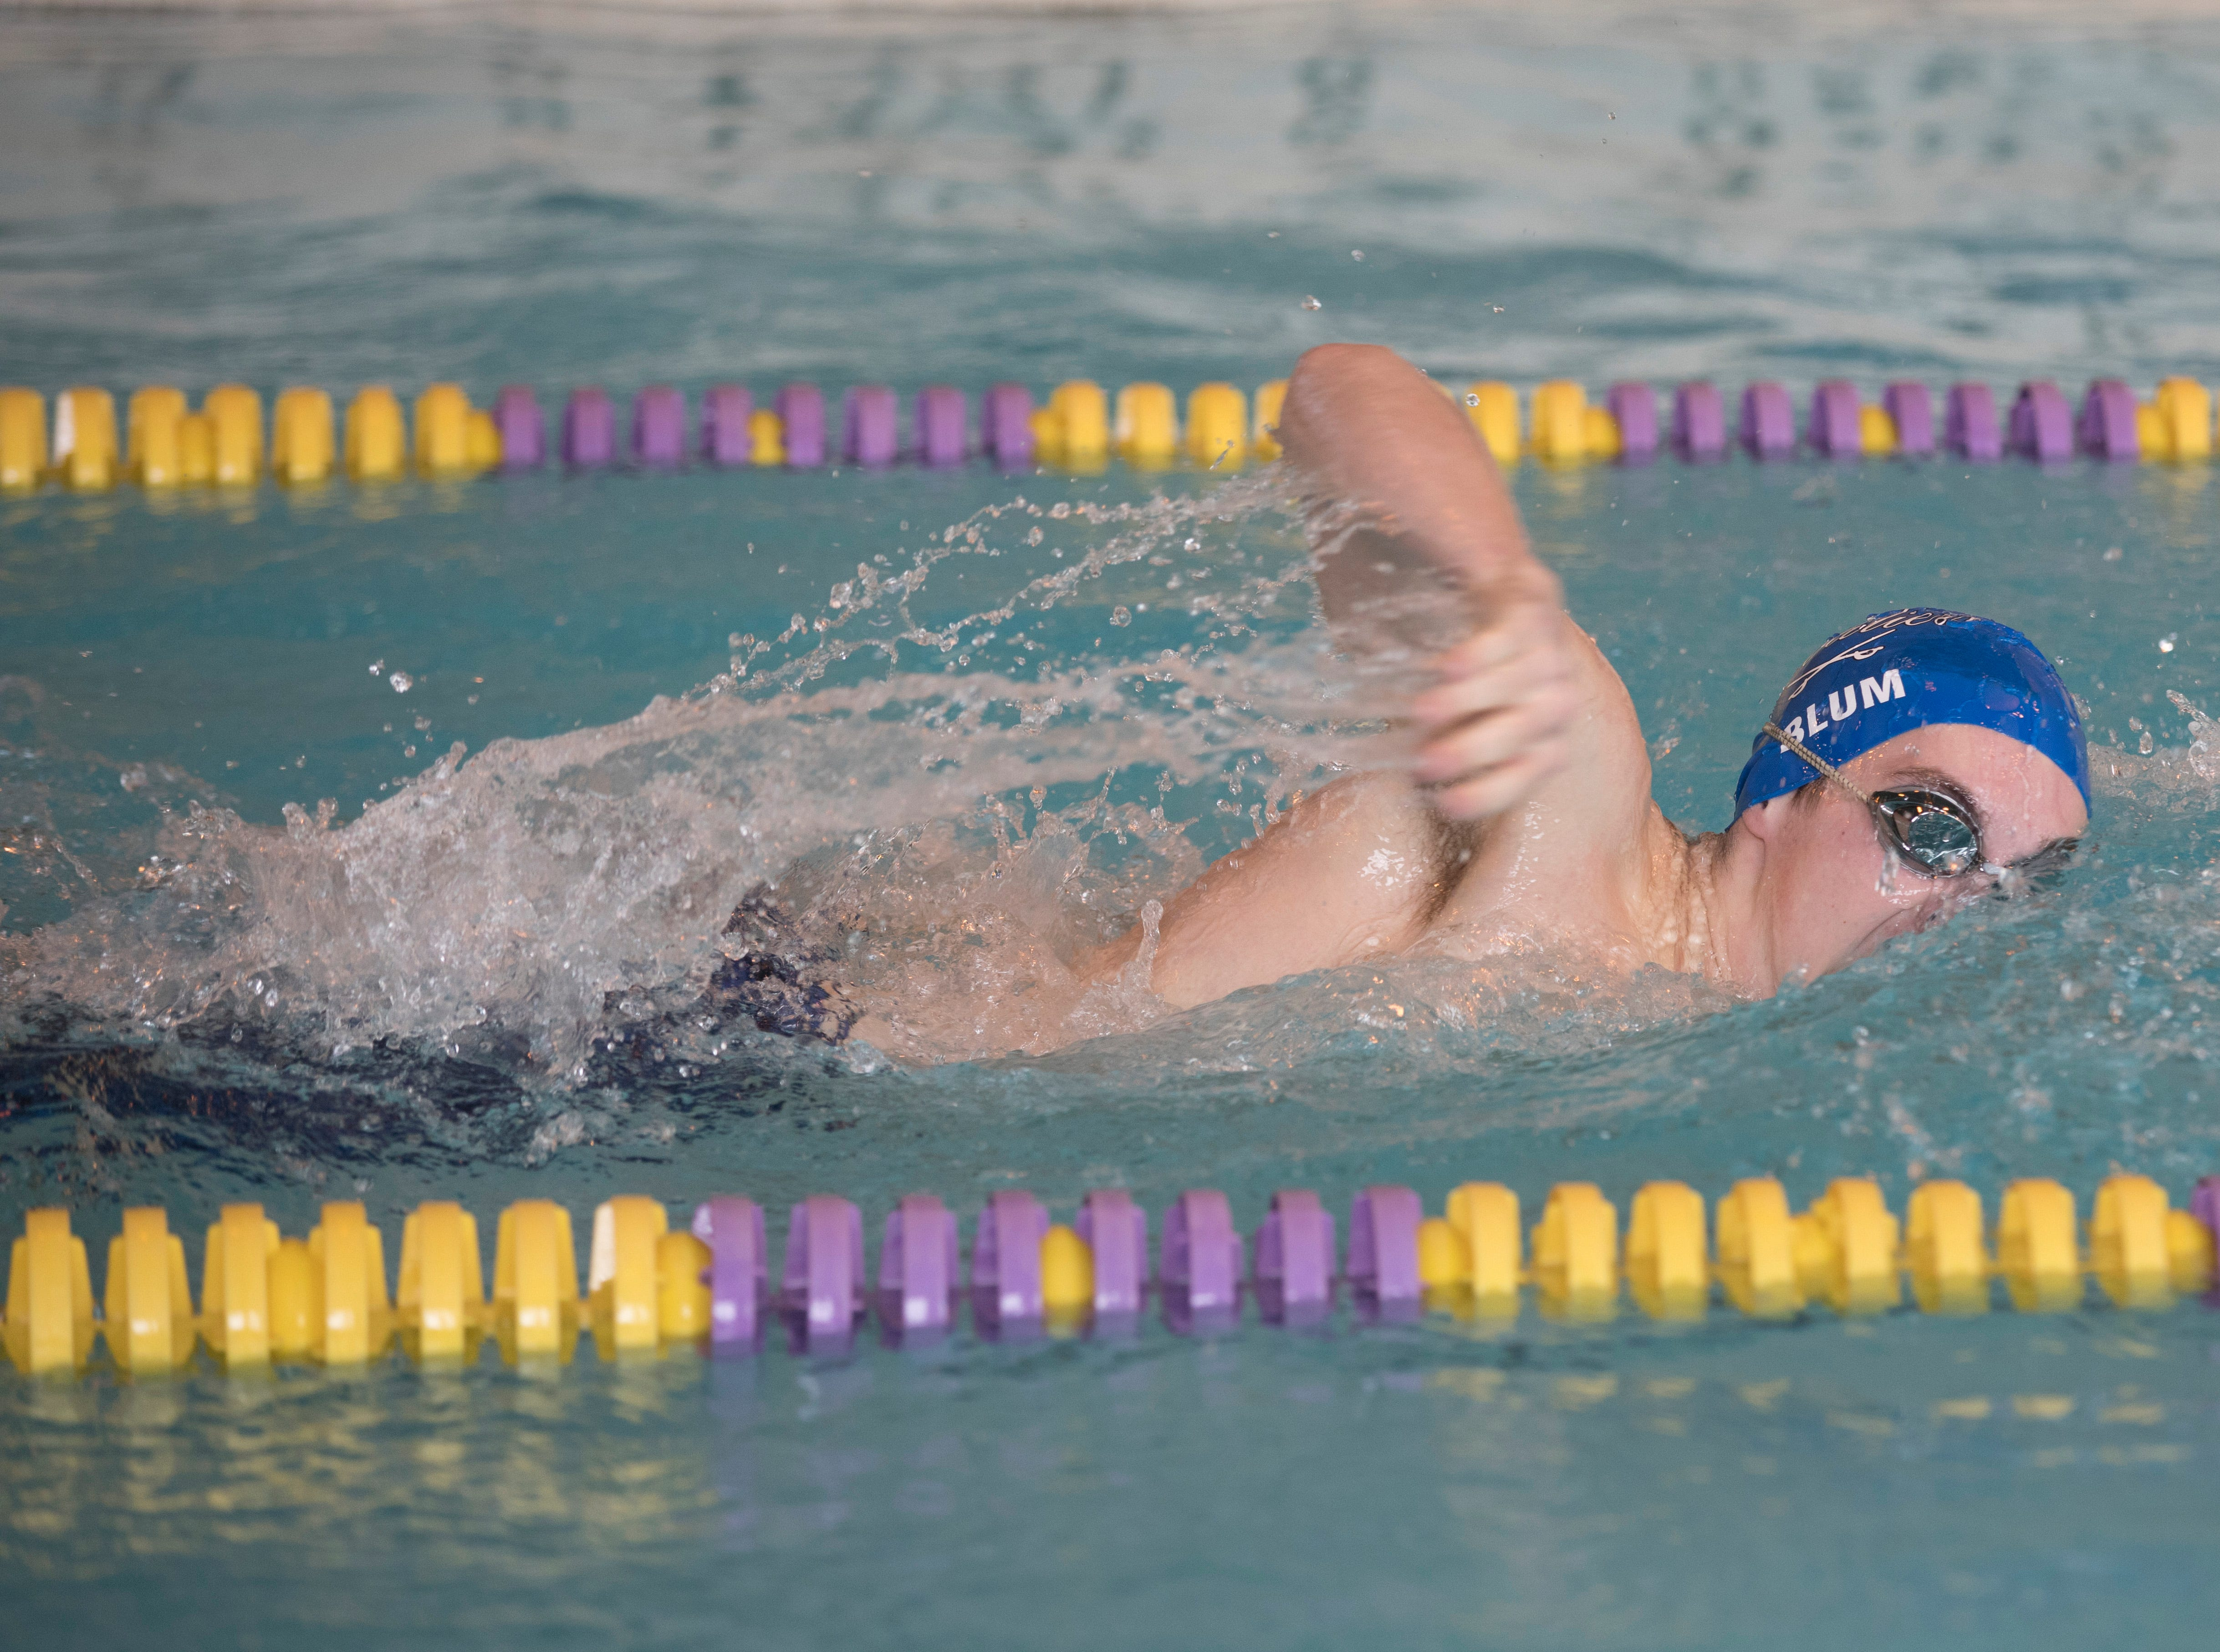 McClain High School hosted the 2019 FAC swimming championships on Saturday, Feb. 2, 2019, in Greenfield, Ohio. The Chillicothe boys team took second place, while the girls took first.